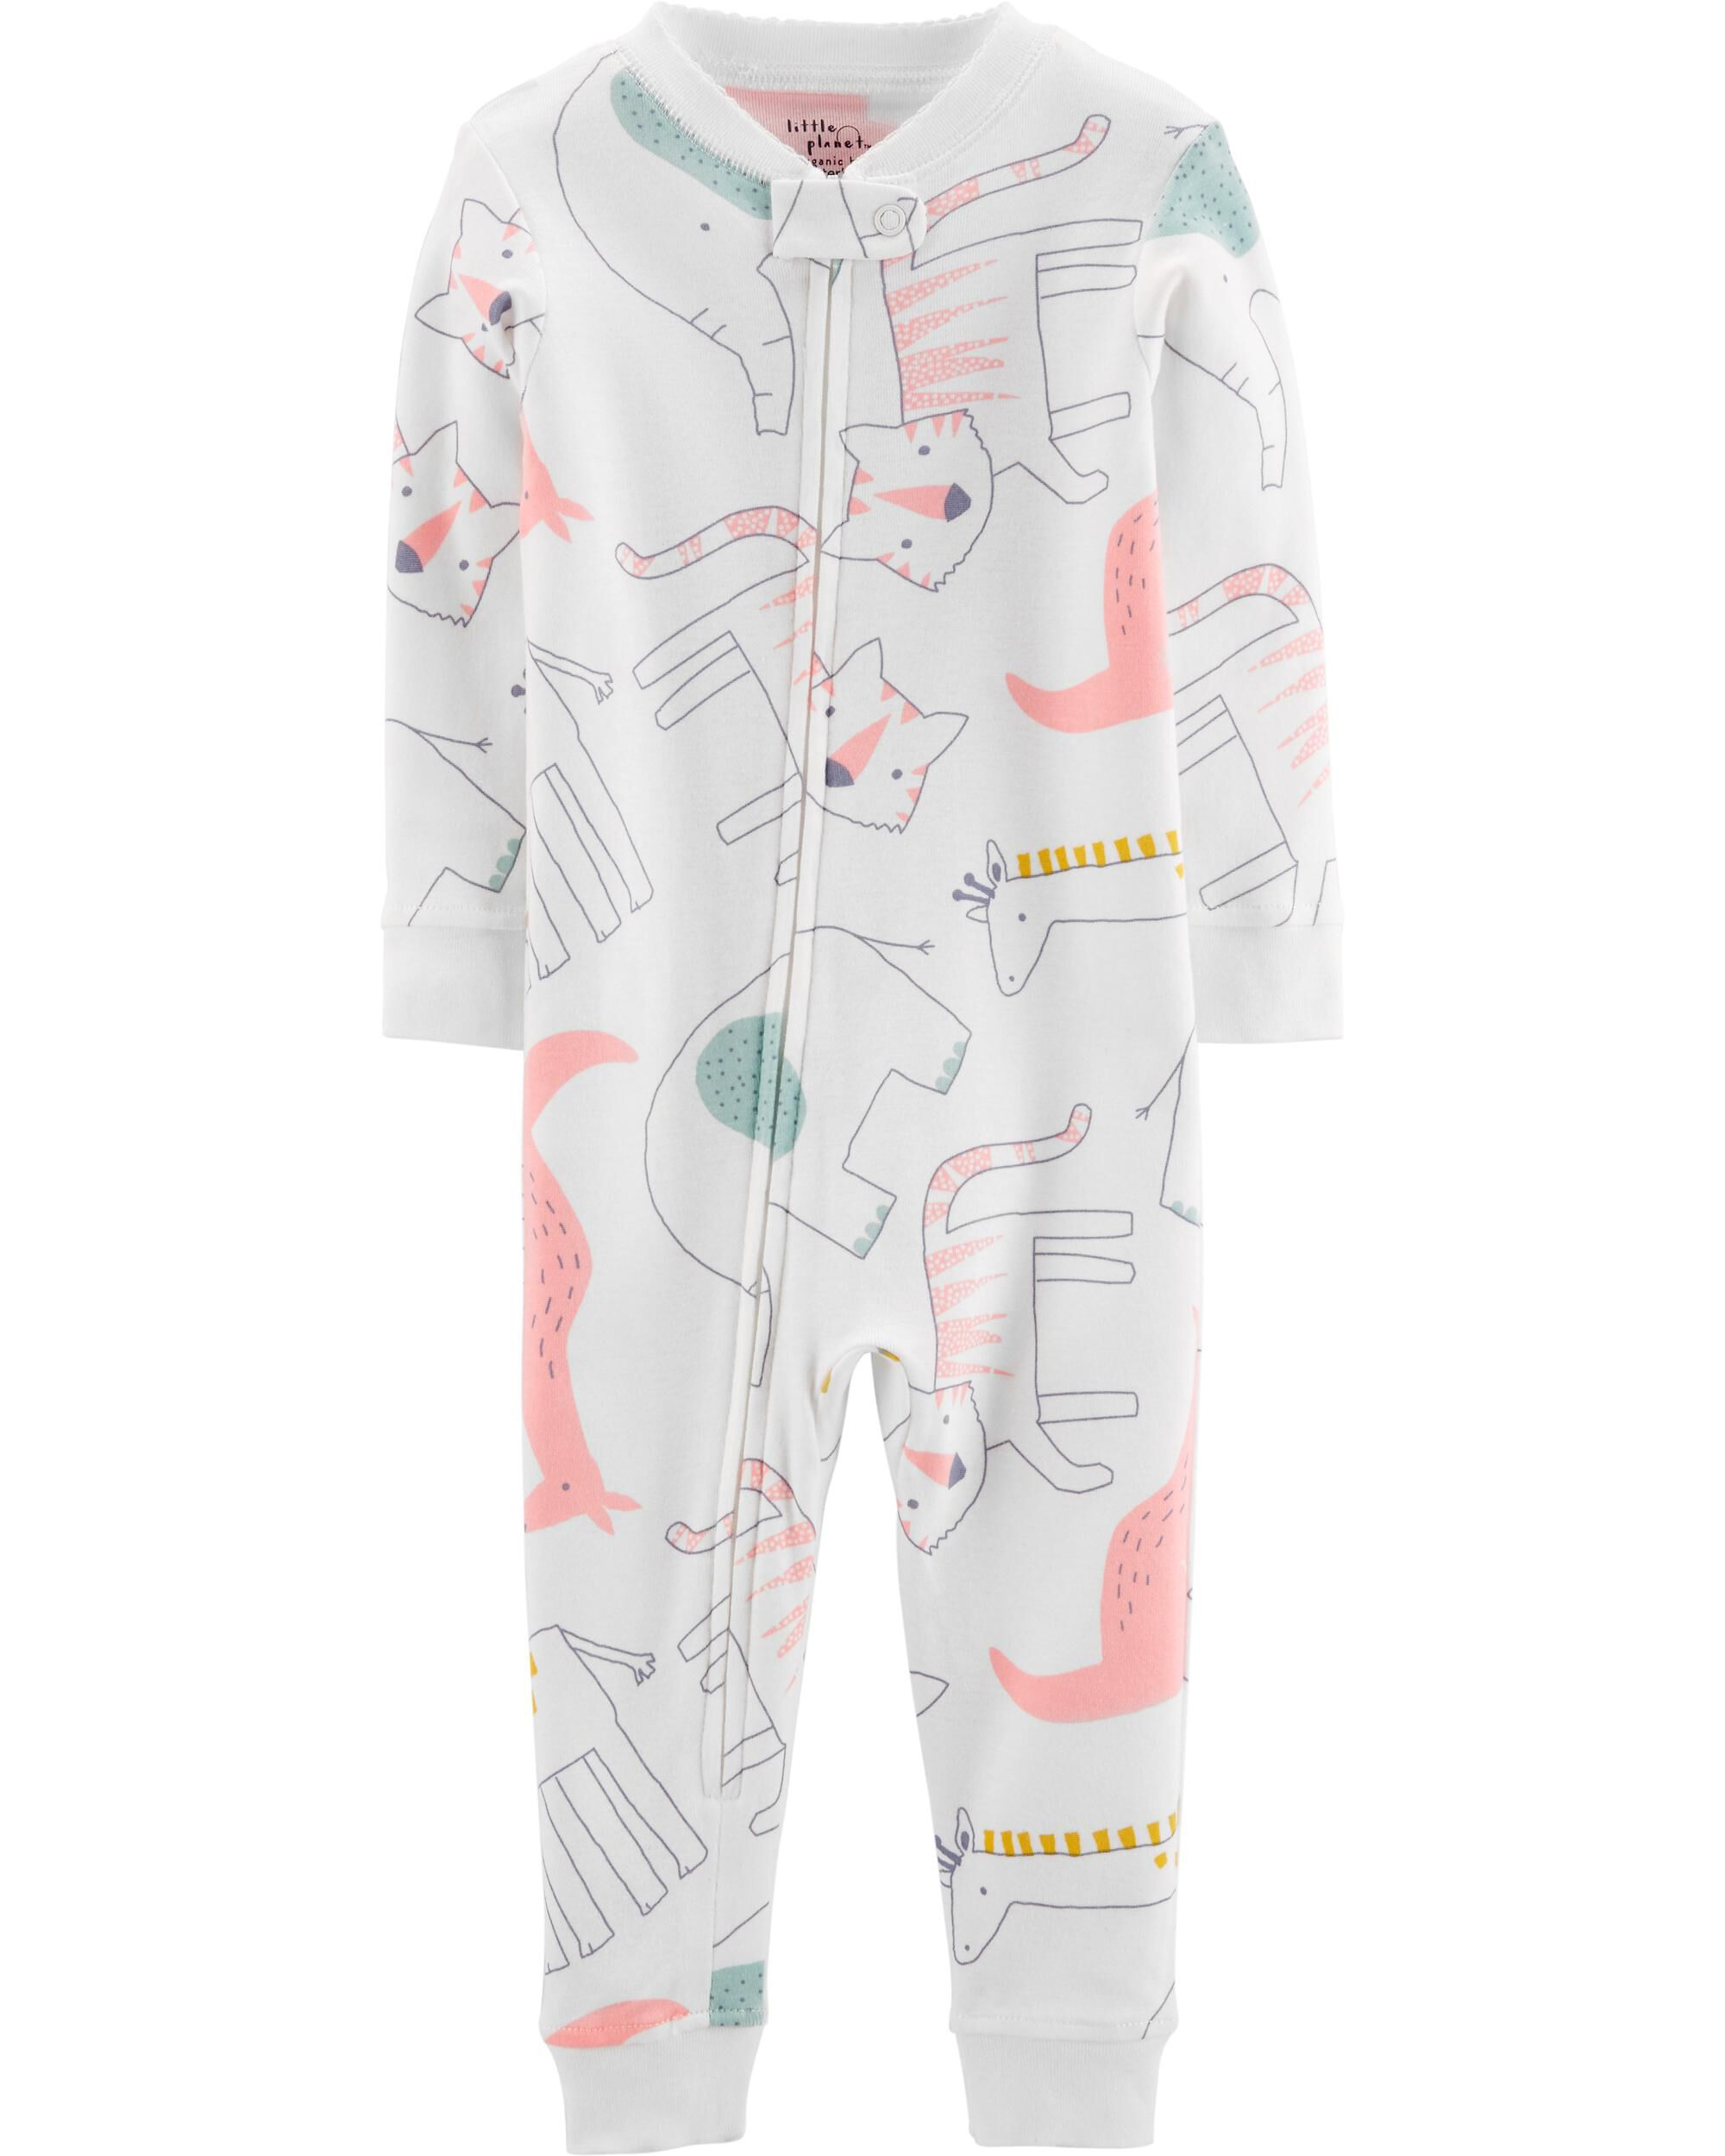 Carter/'s Hearts Pajamas Footless SNUG FIT Girls 2T 3T New Zip Up 1 Piece